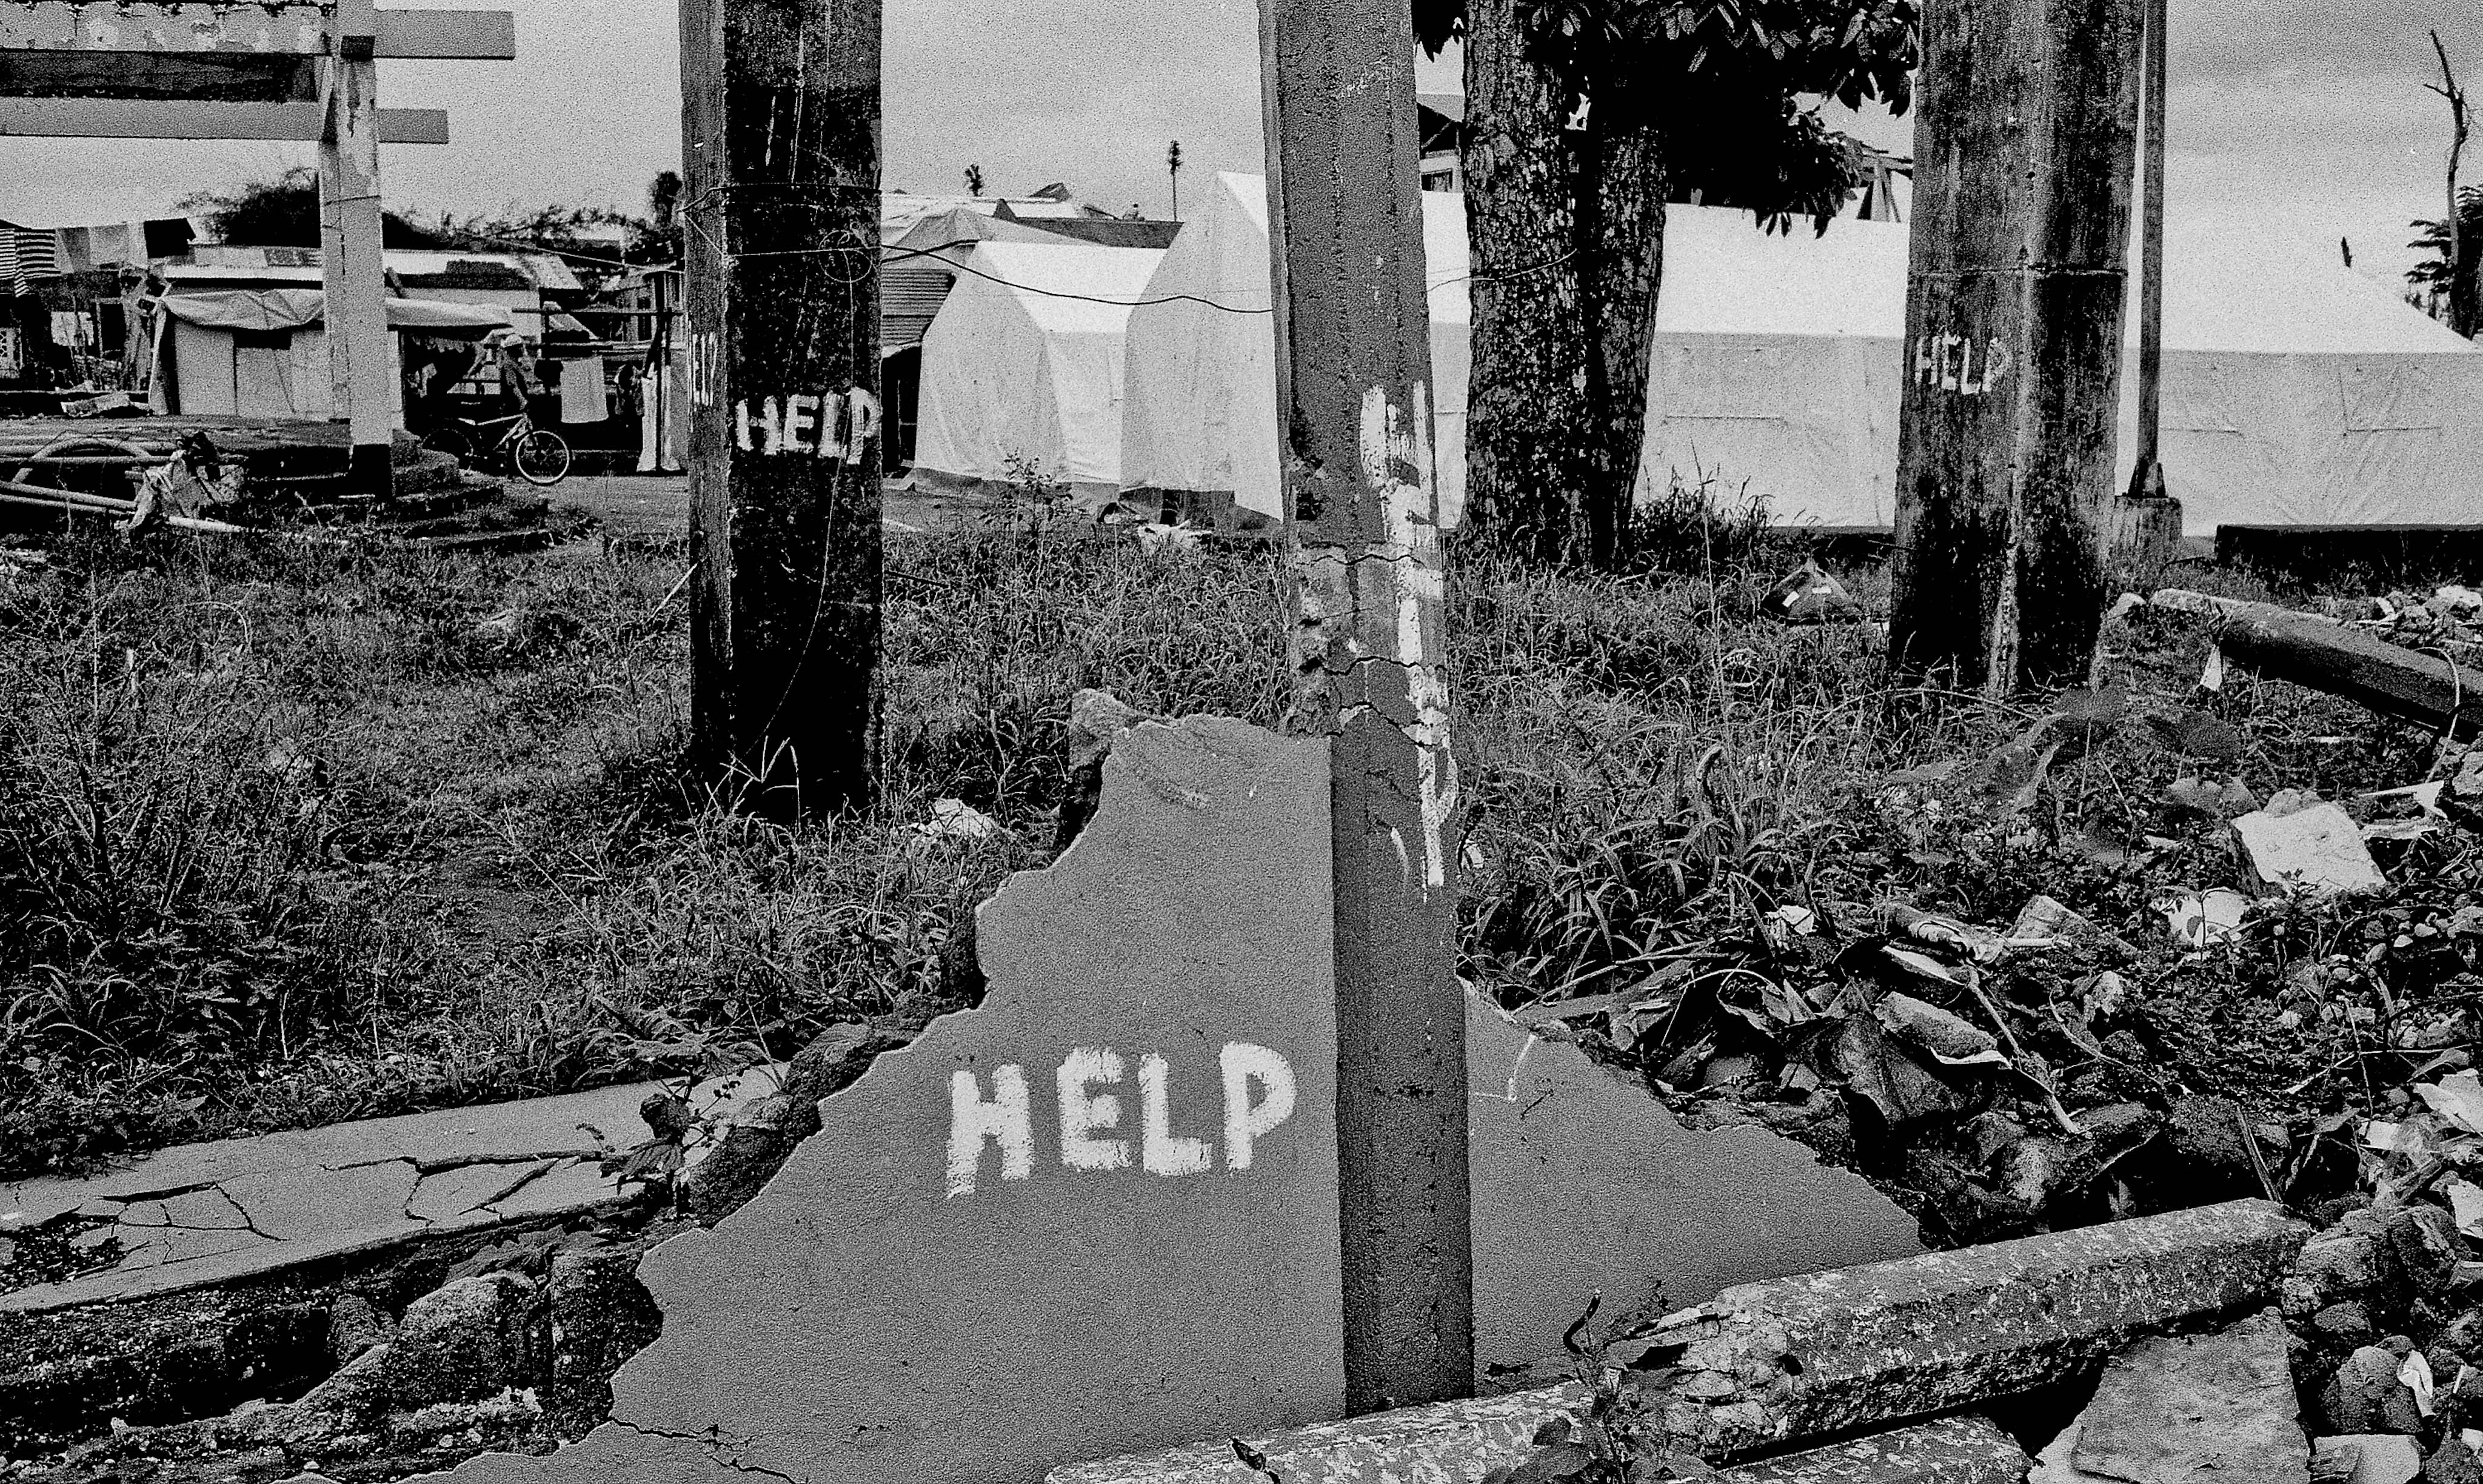 A call for help is painted on pillars in San Joaquin, Feb. 15, 2014.